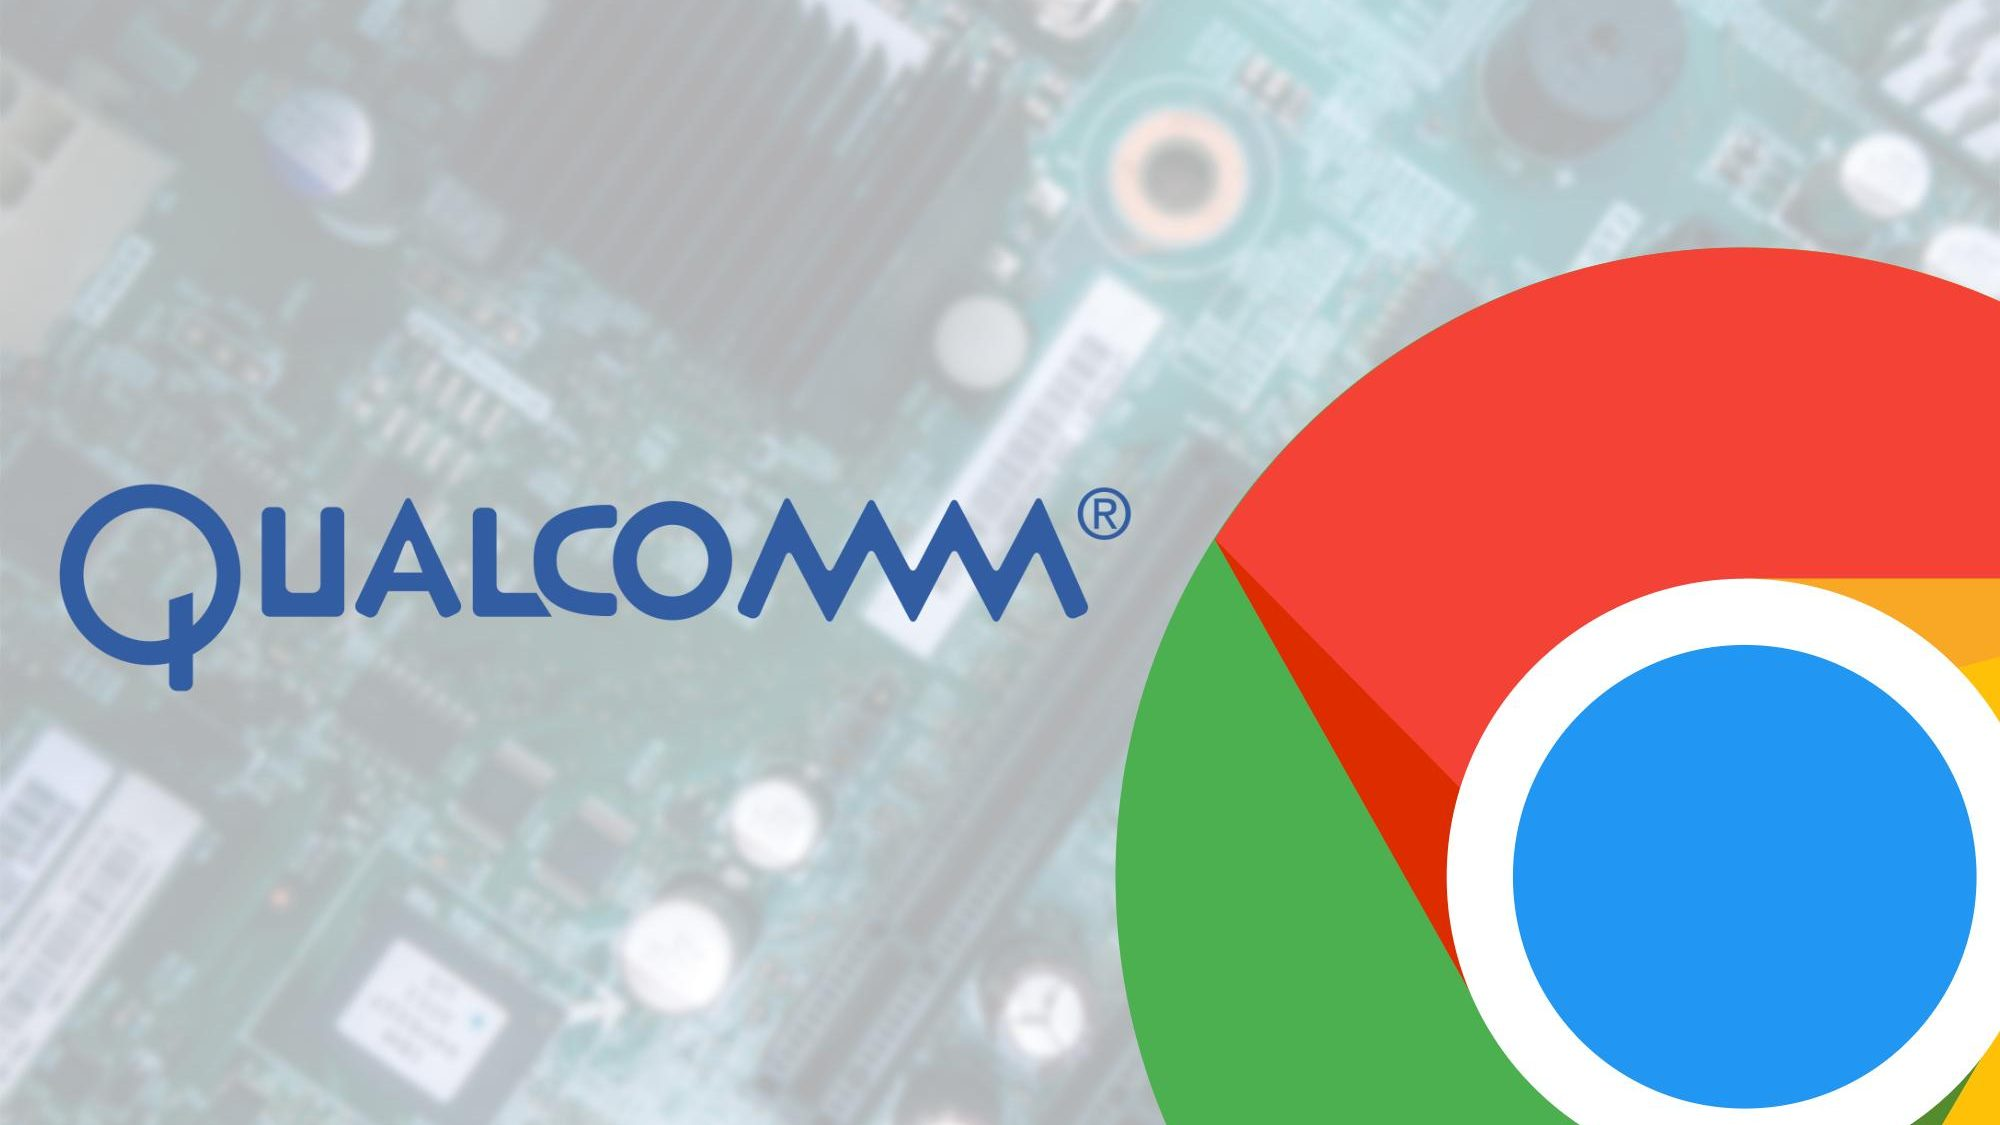 New device 'pompom' could signal the long-awaited arrival of Qualcomm Chromebooks